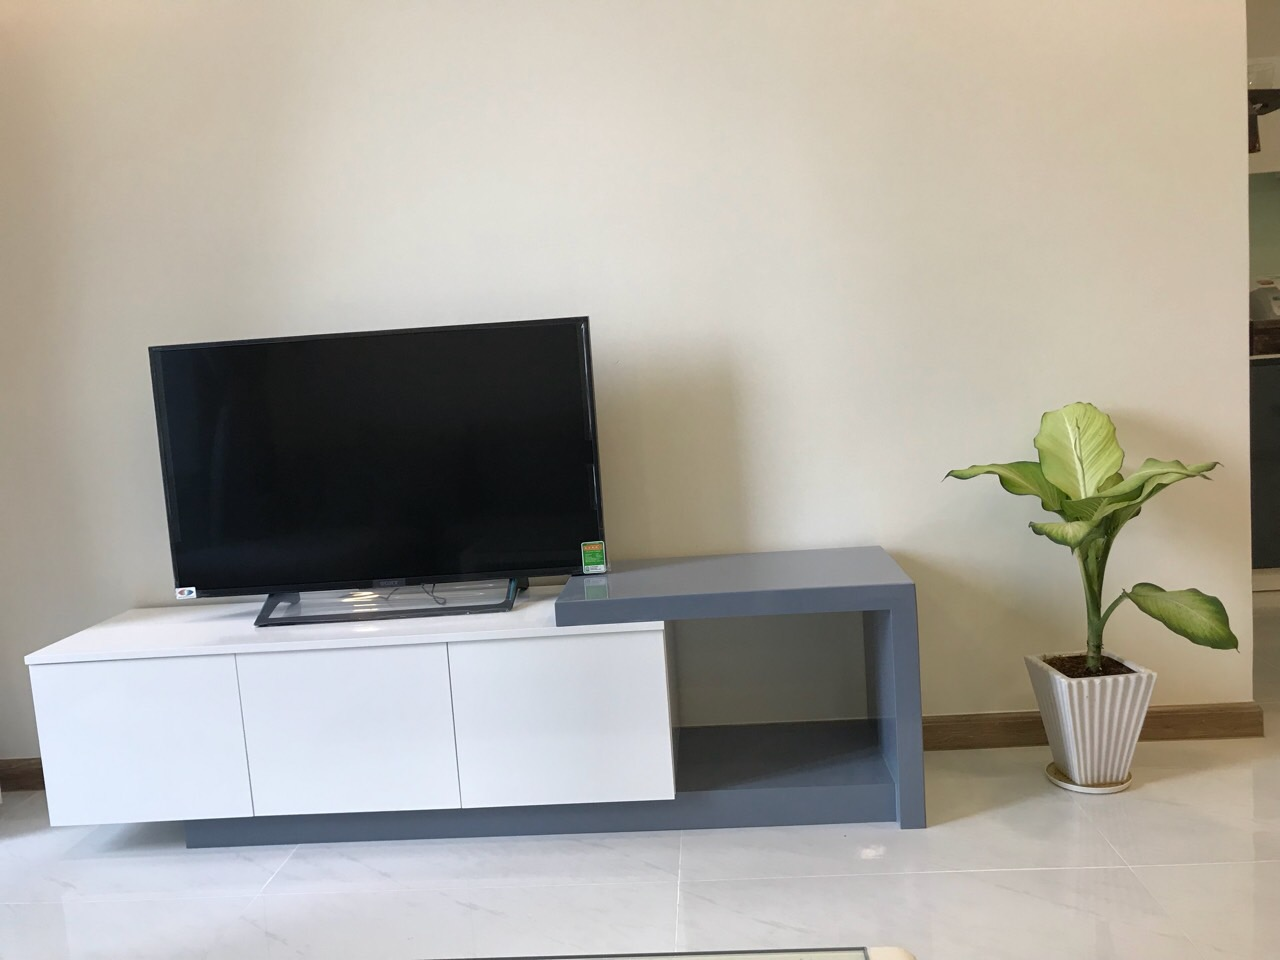 vinhomes central park apartment for rent in binh thanh district hcmc BT105L399 (2)